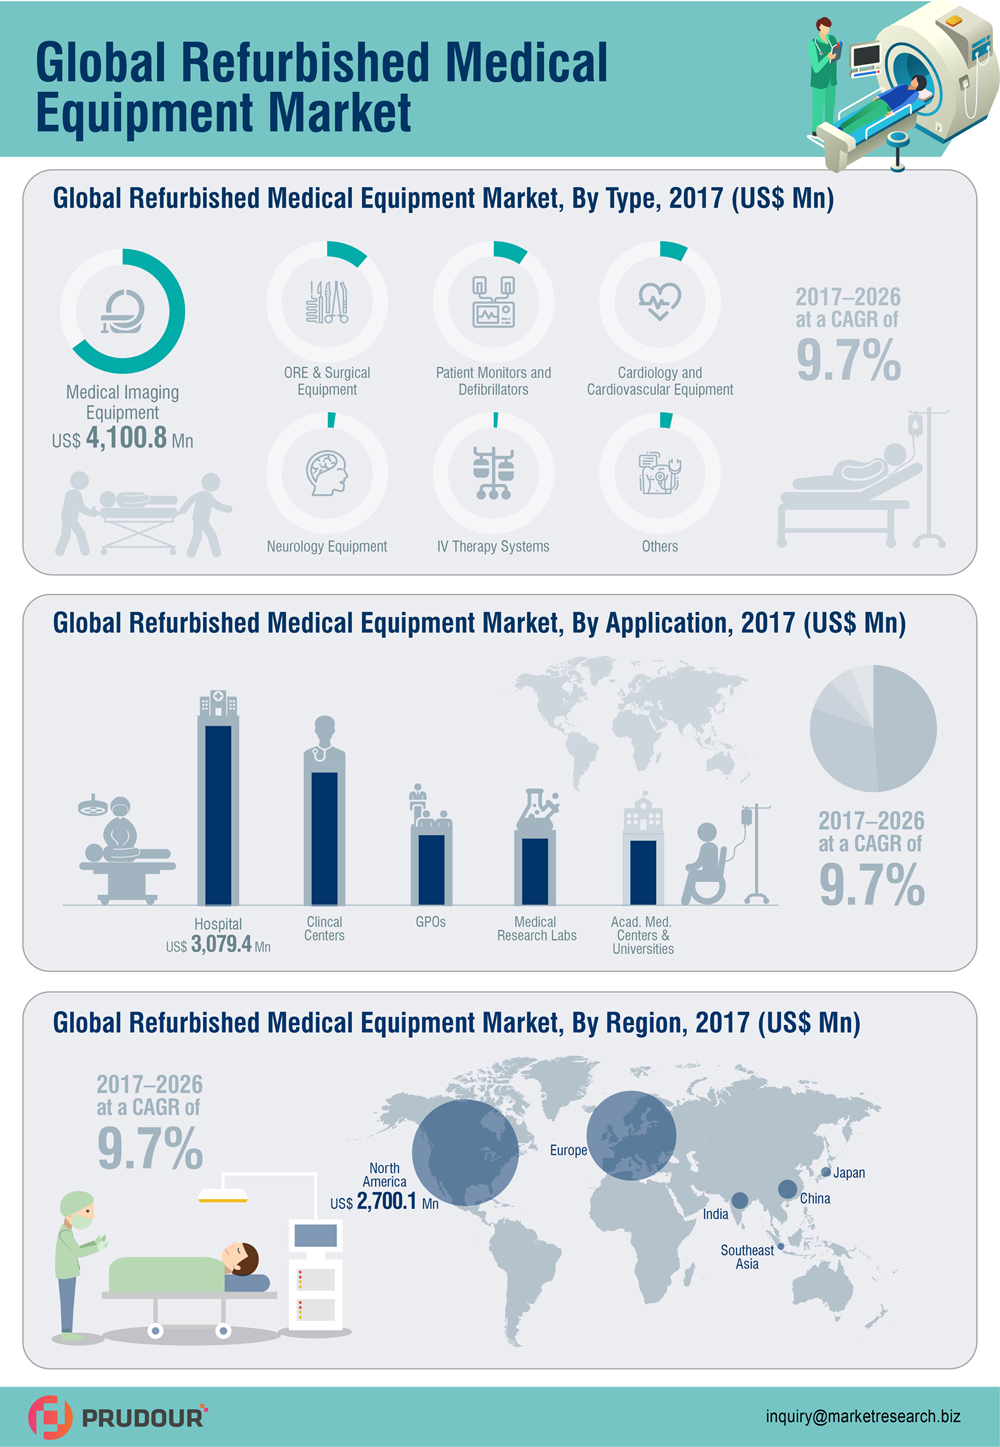 To Register CAGR Of 9.7%: Global Refurbished Medical Equipment Market about to hit CAGR of 9.7% from 2017 to 2026